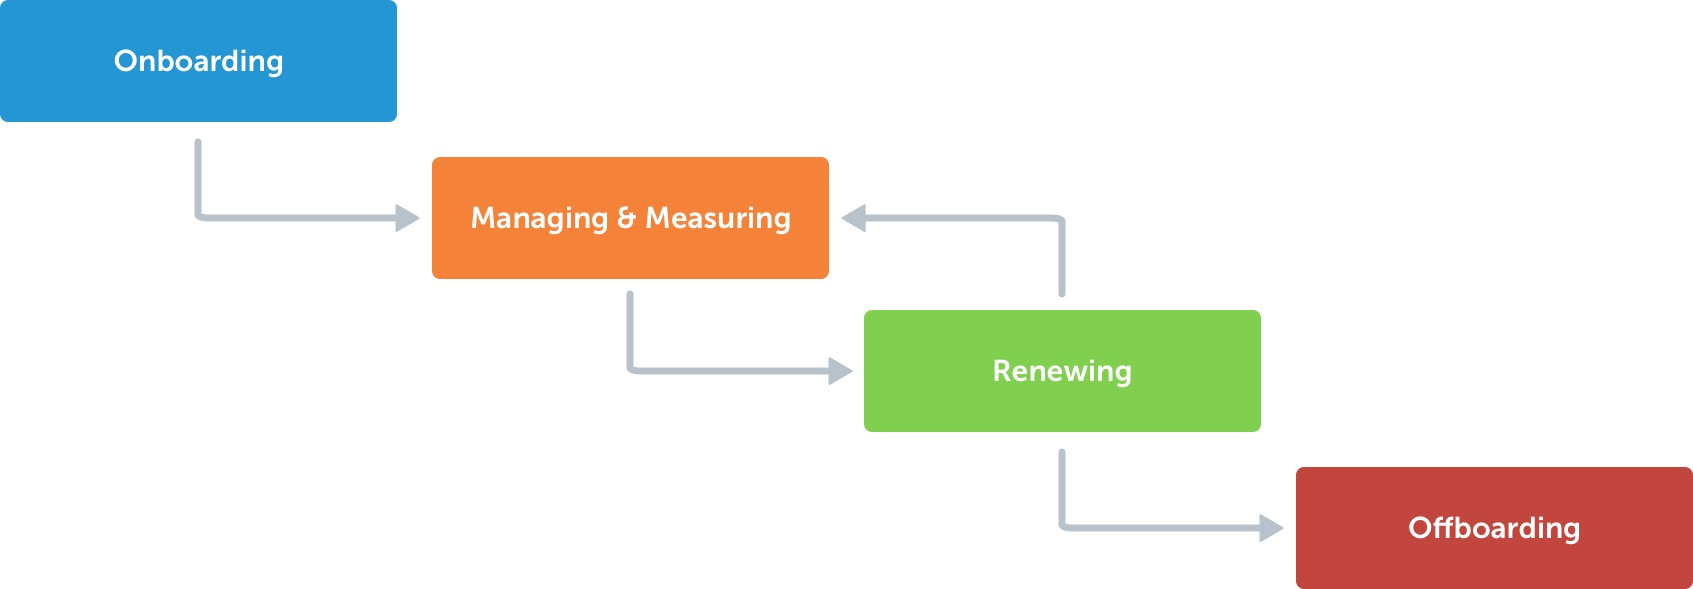 SaaS management lifecycle